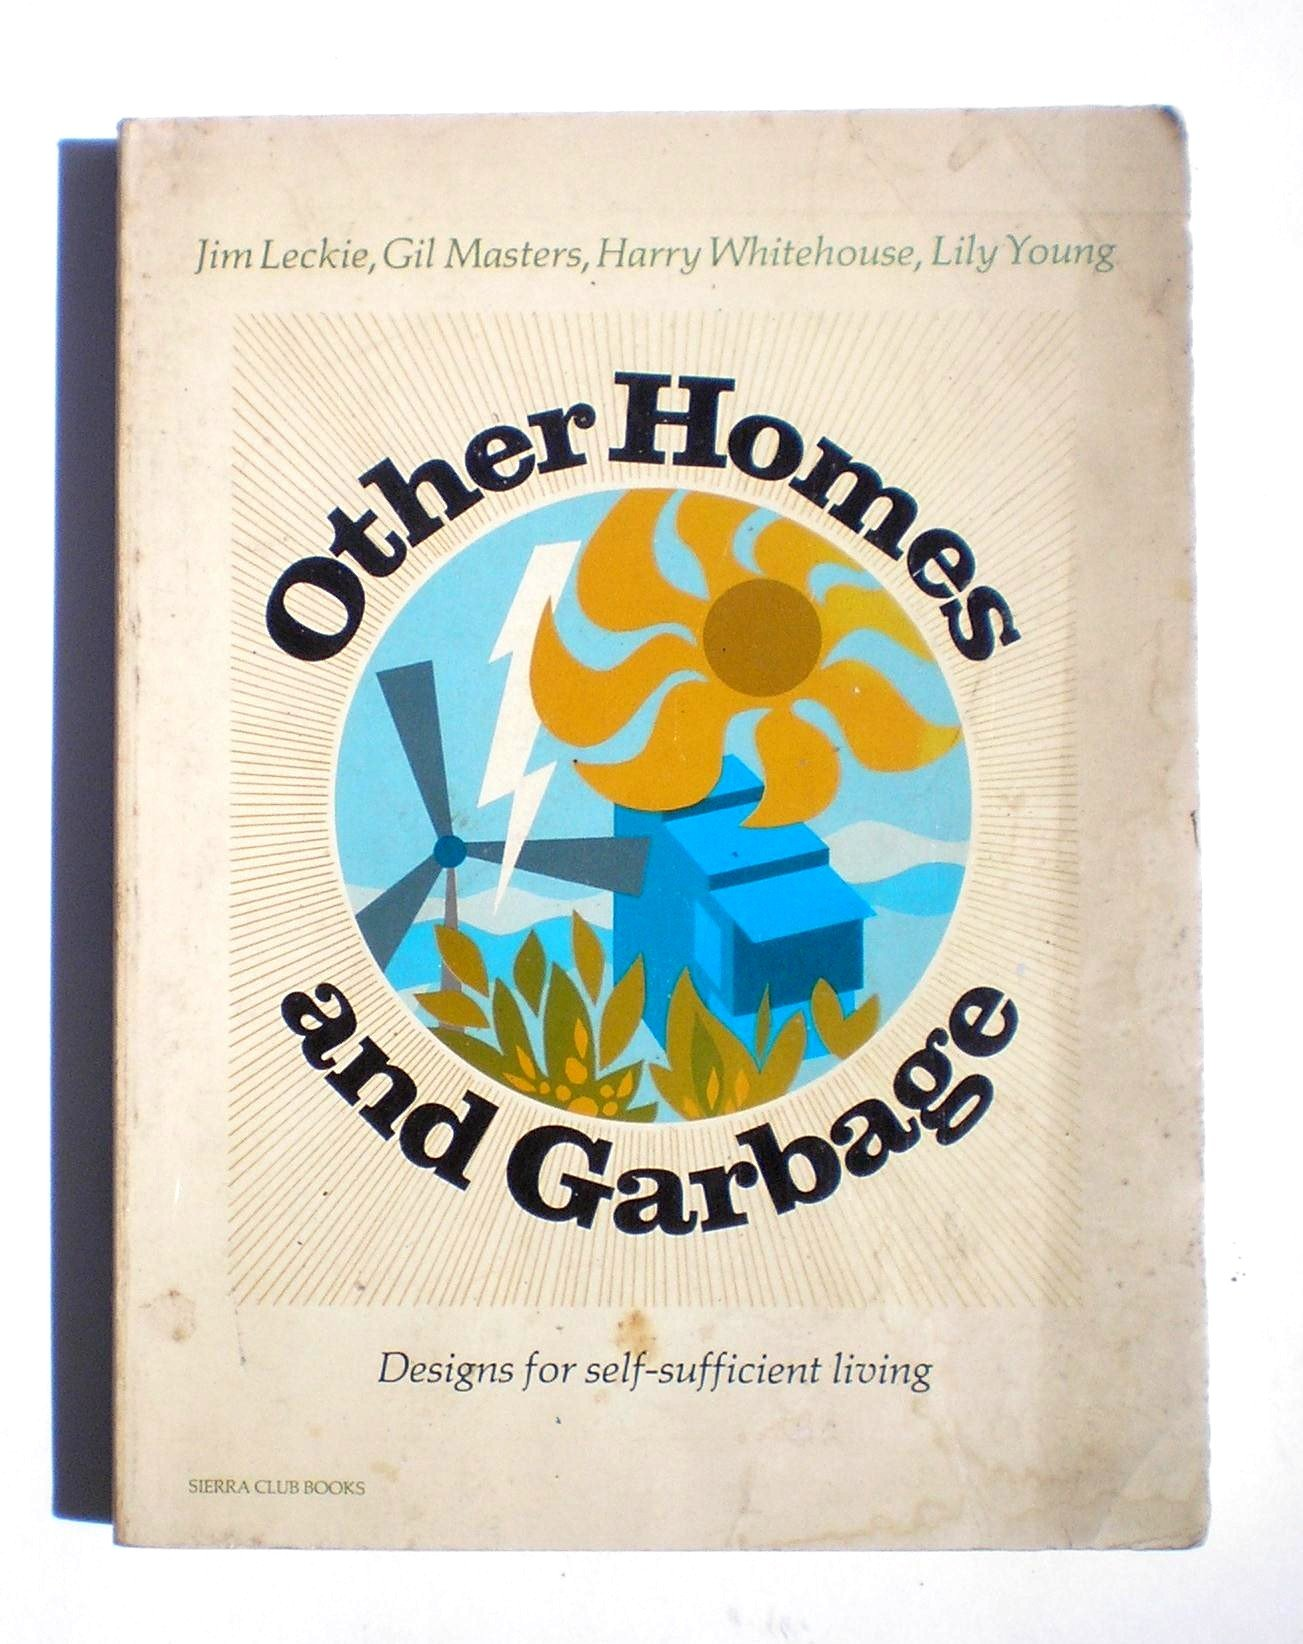 Other homes and garbage: Designs for self-sufficient living, Leckie, Jim; Masters, Gil; Whitehouse, Harry; Young Lily